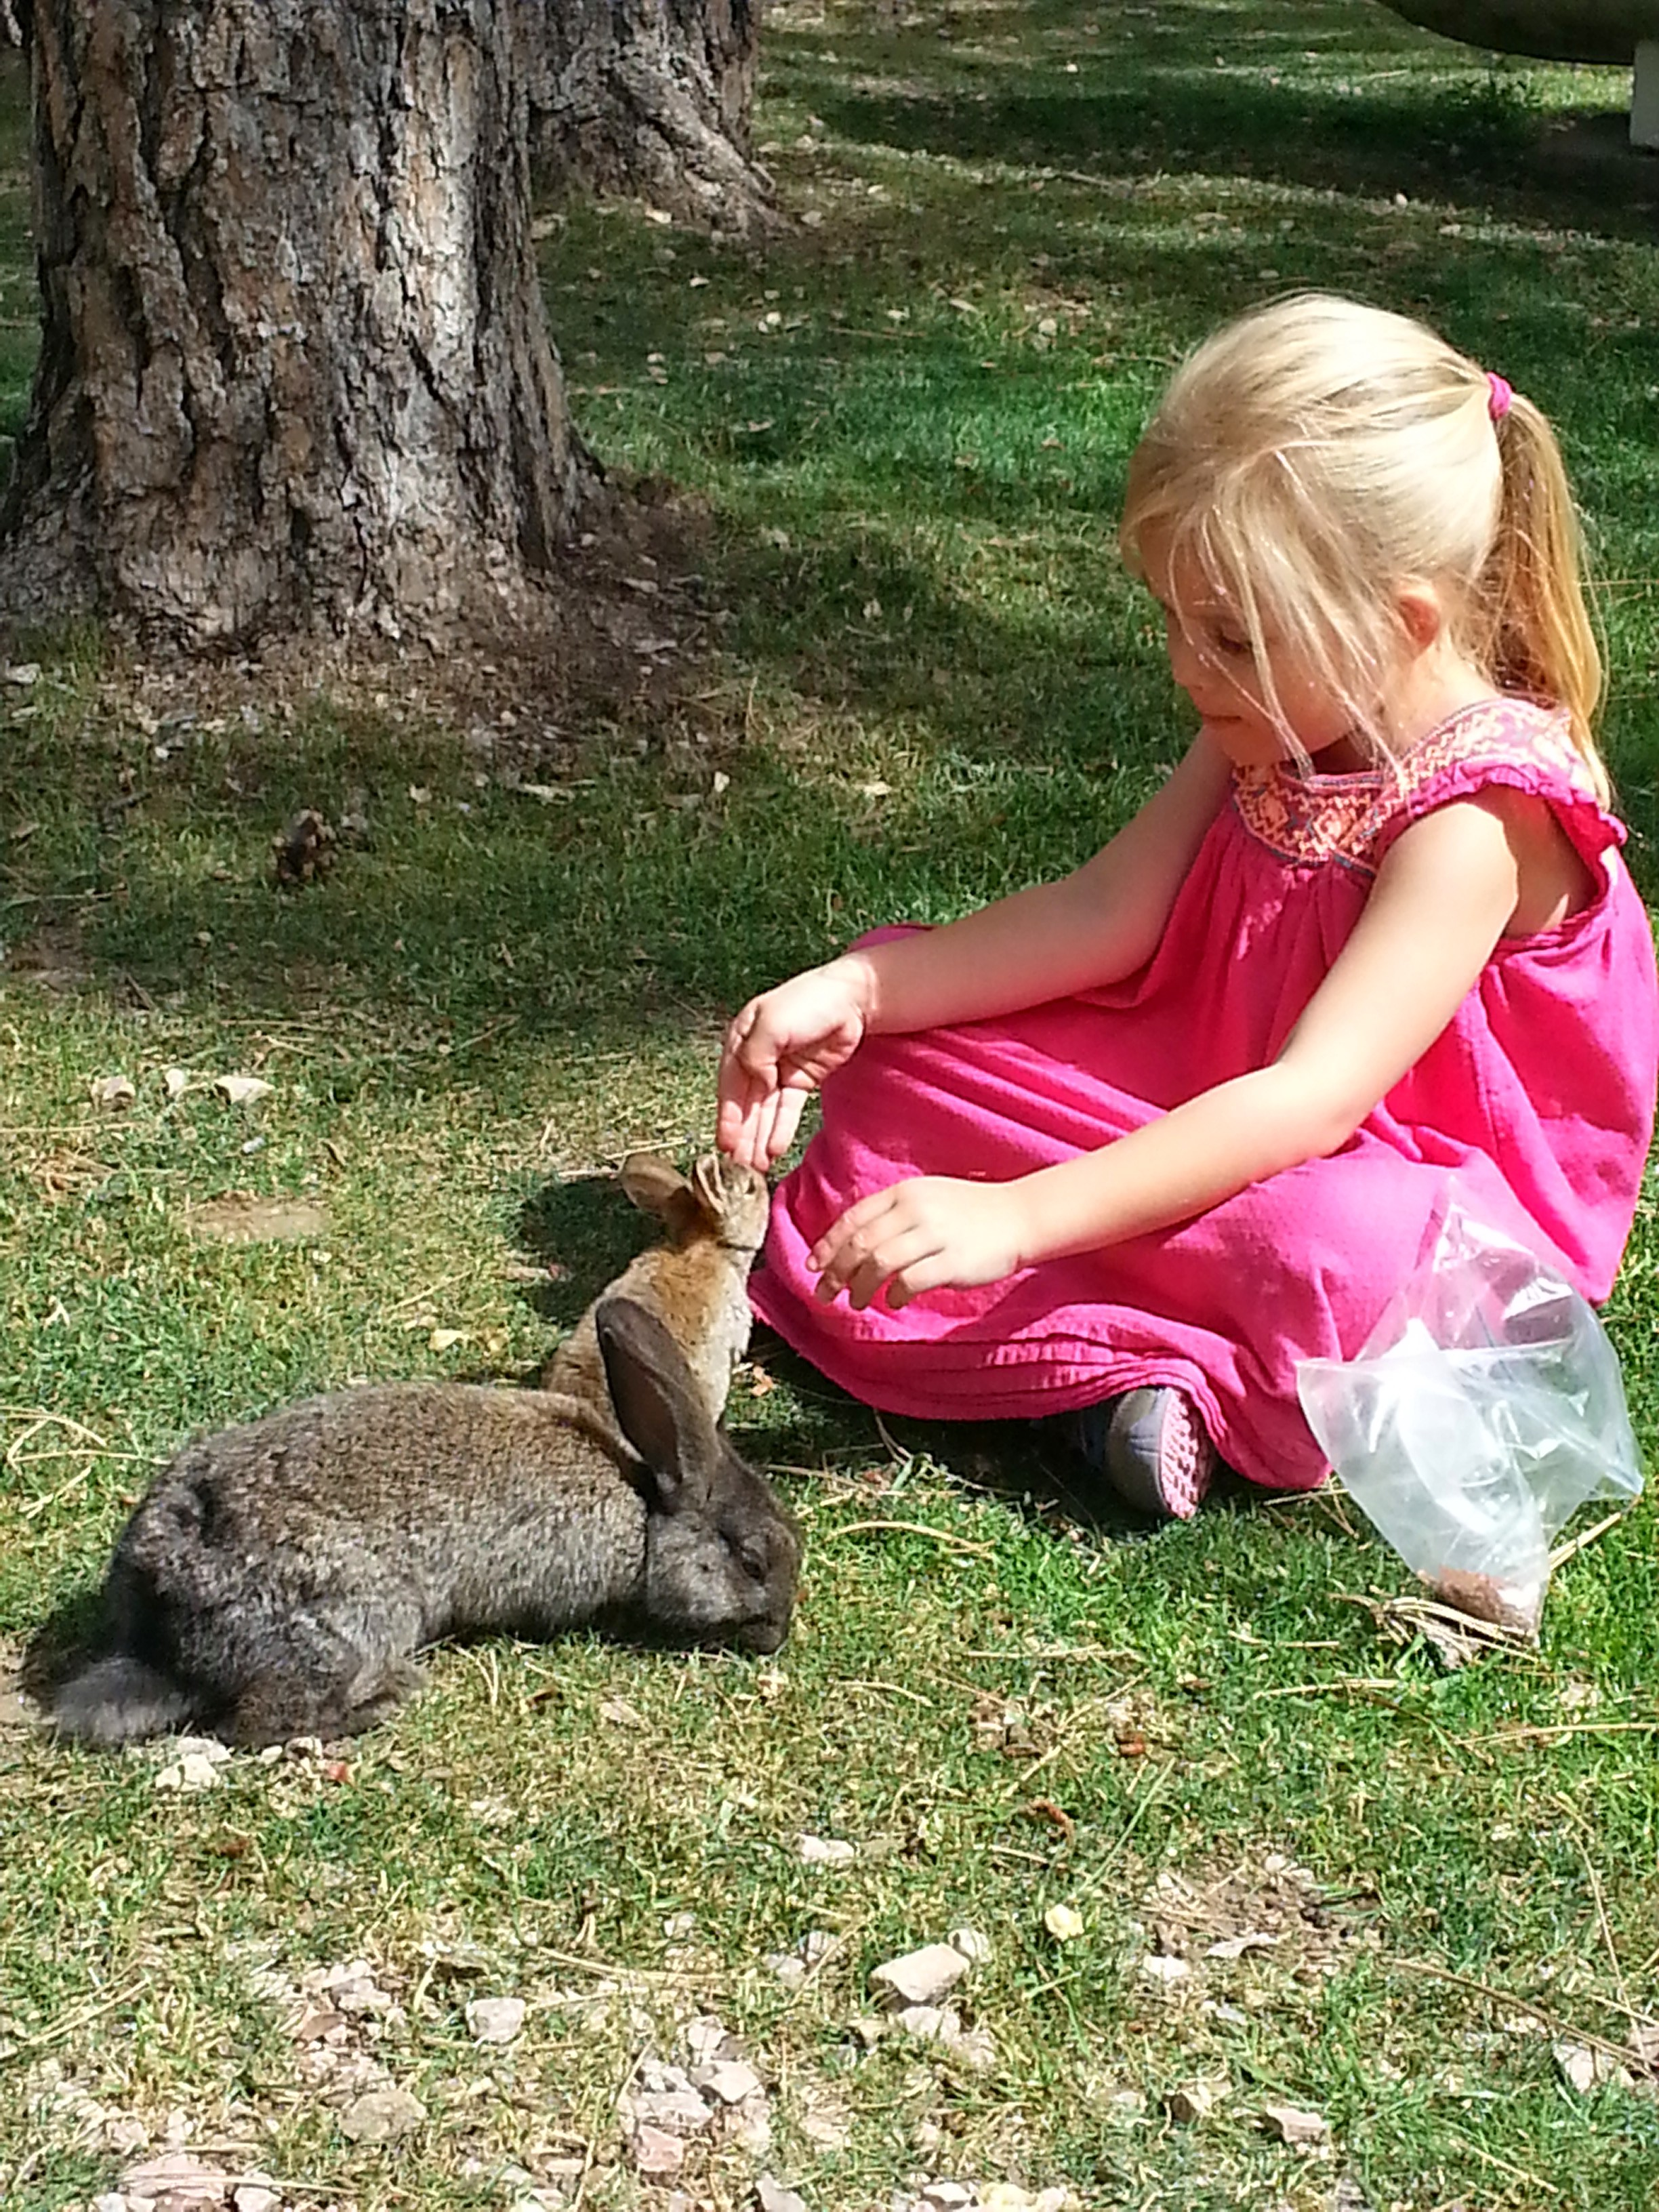 There are tens of tame rabbits at Beaver Lake.